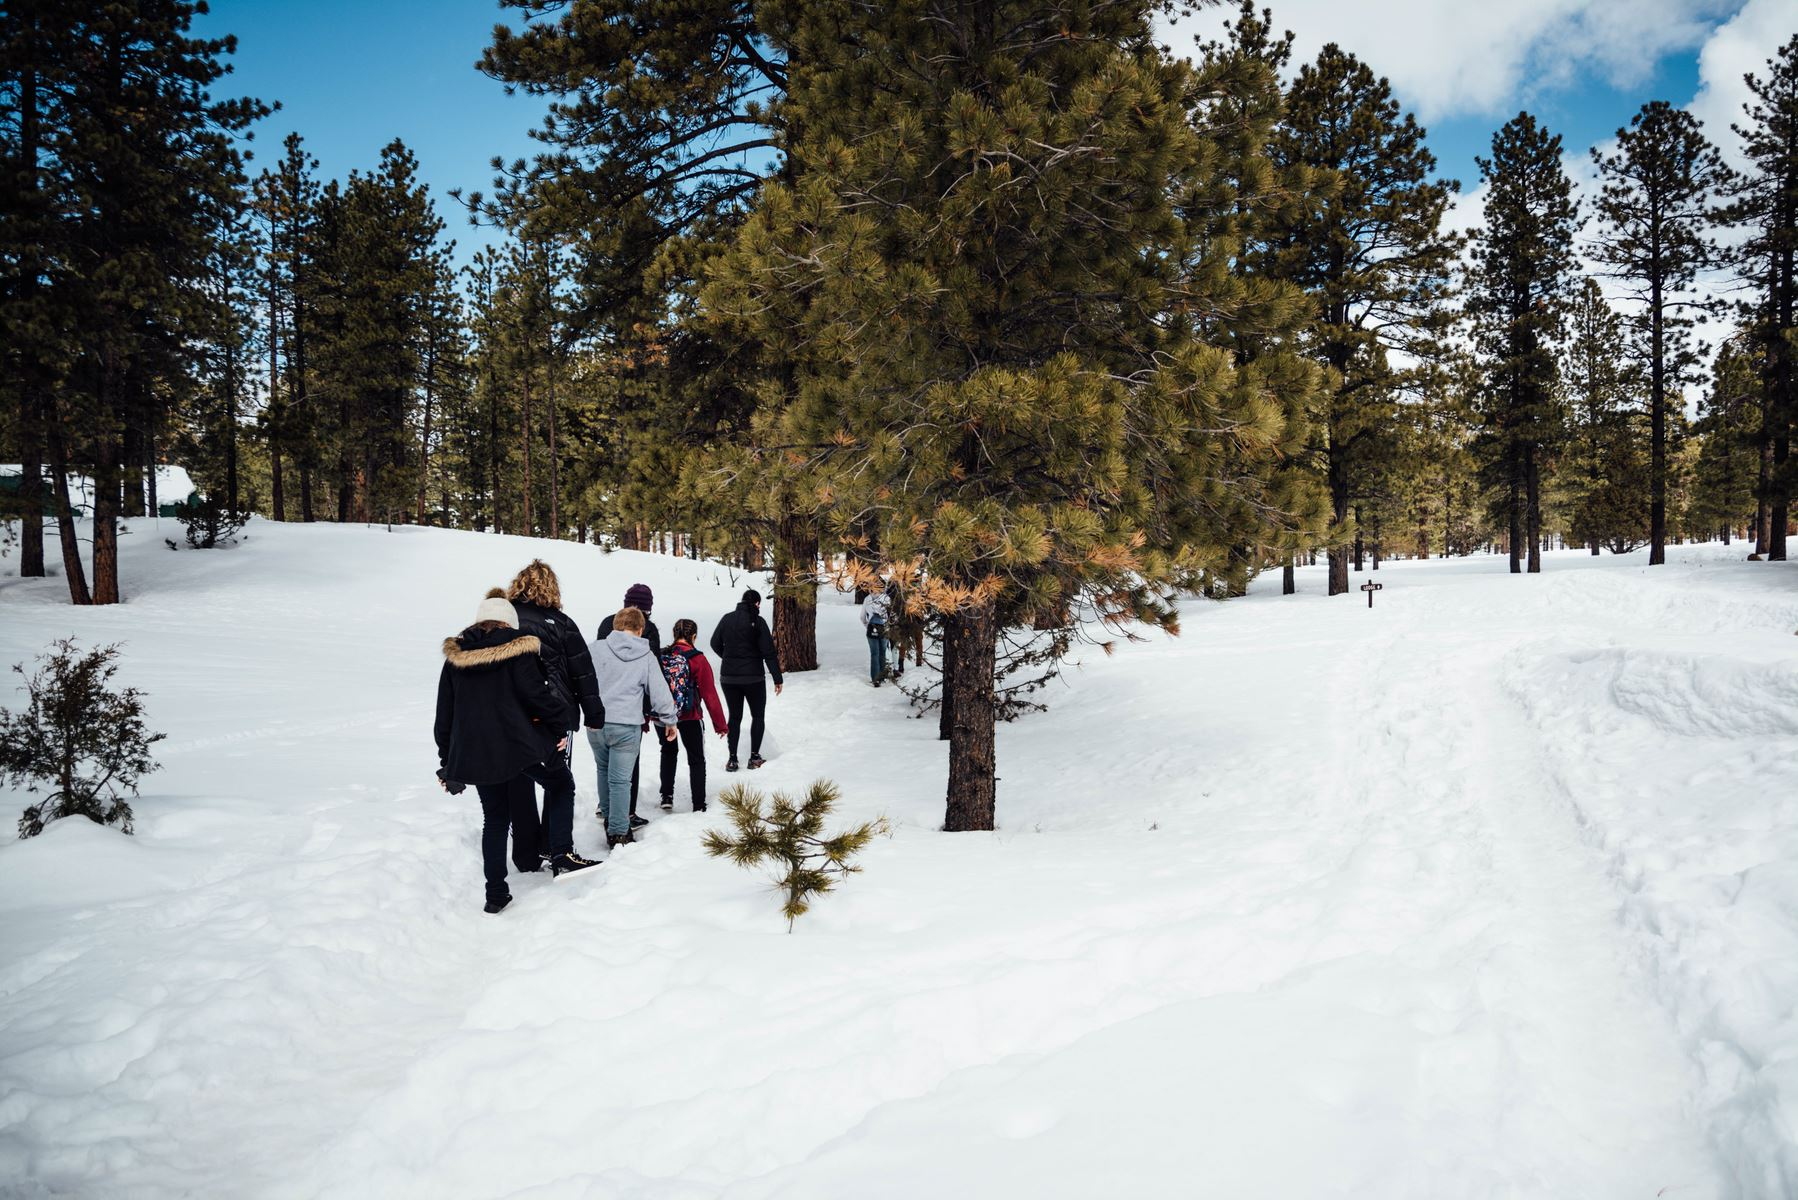 Trekking through the snow at Bryce Canyon